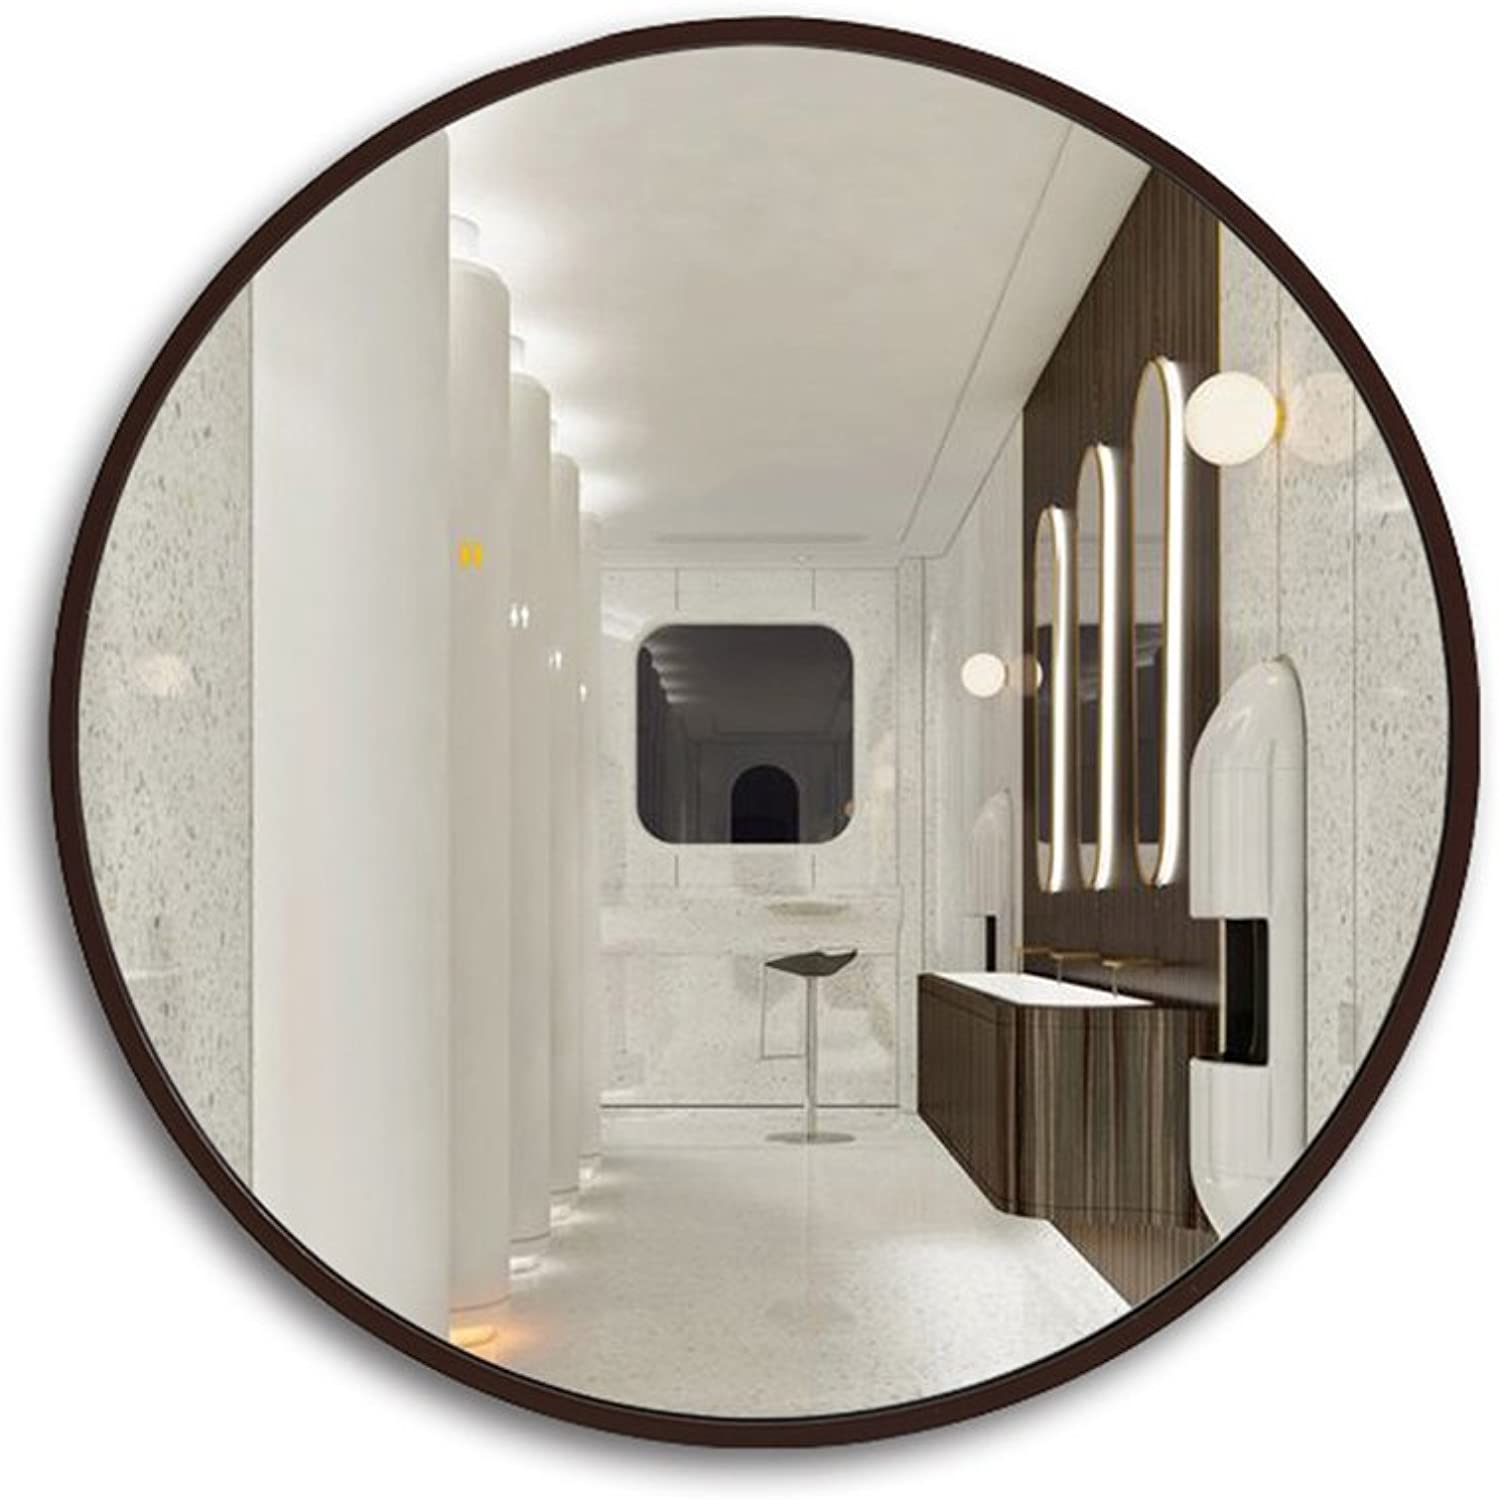 ZHBWJSH Bathroom Mirrors Makeup Mirrors Wall Mirrors Large Round Mirrors Decorative Mirrors, Available in Three Sizes (Brown, White, Black, Wood) (color   Brown, Size   70  70 cm)